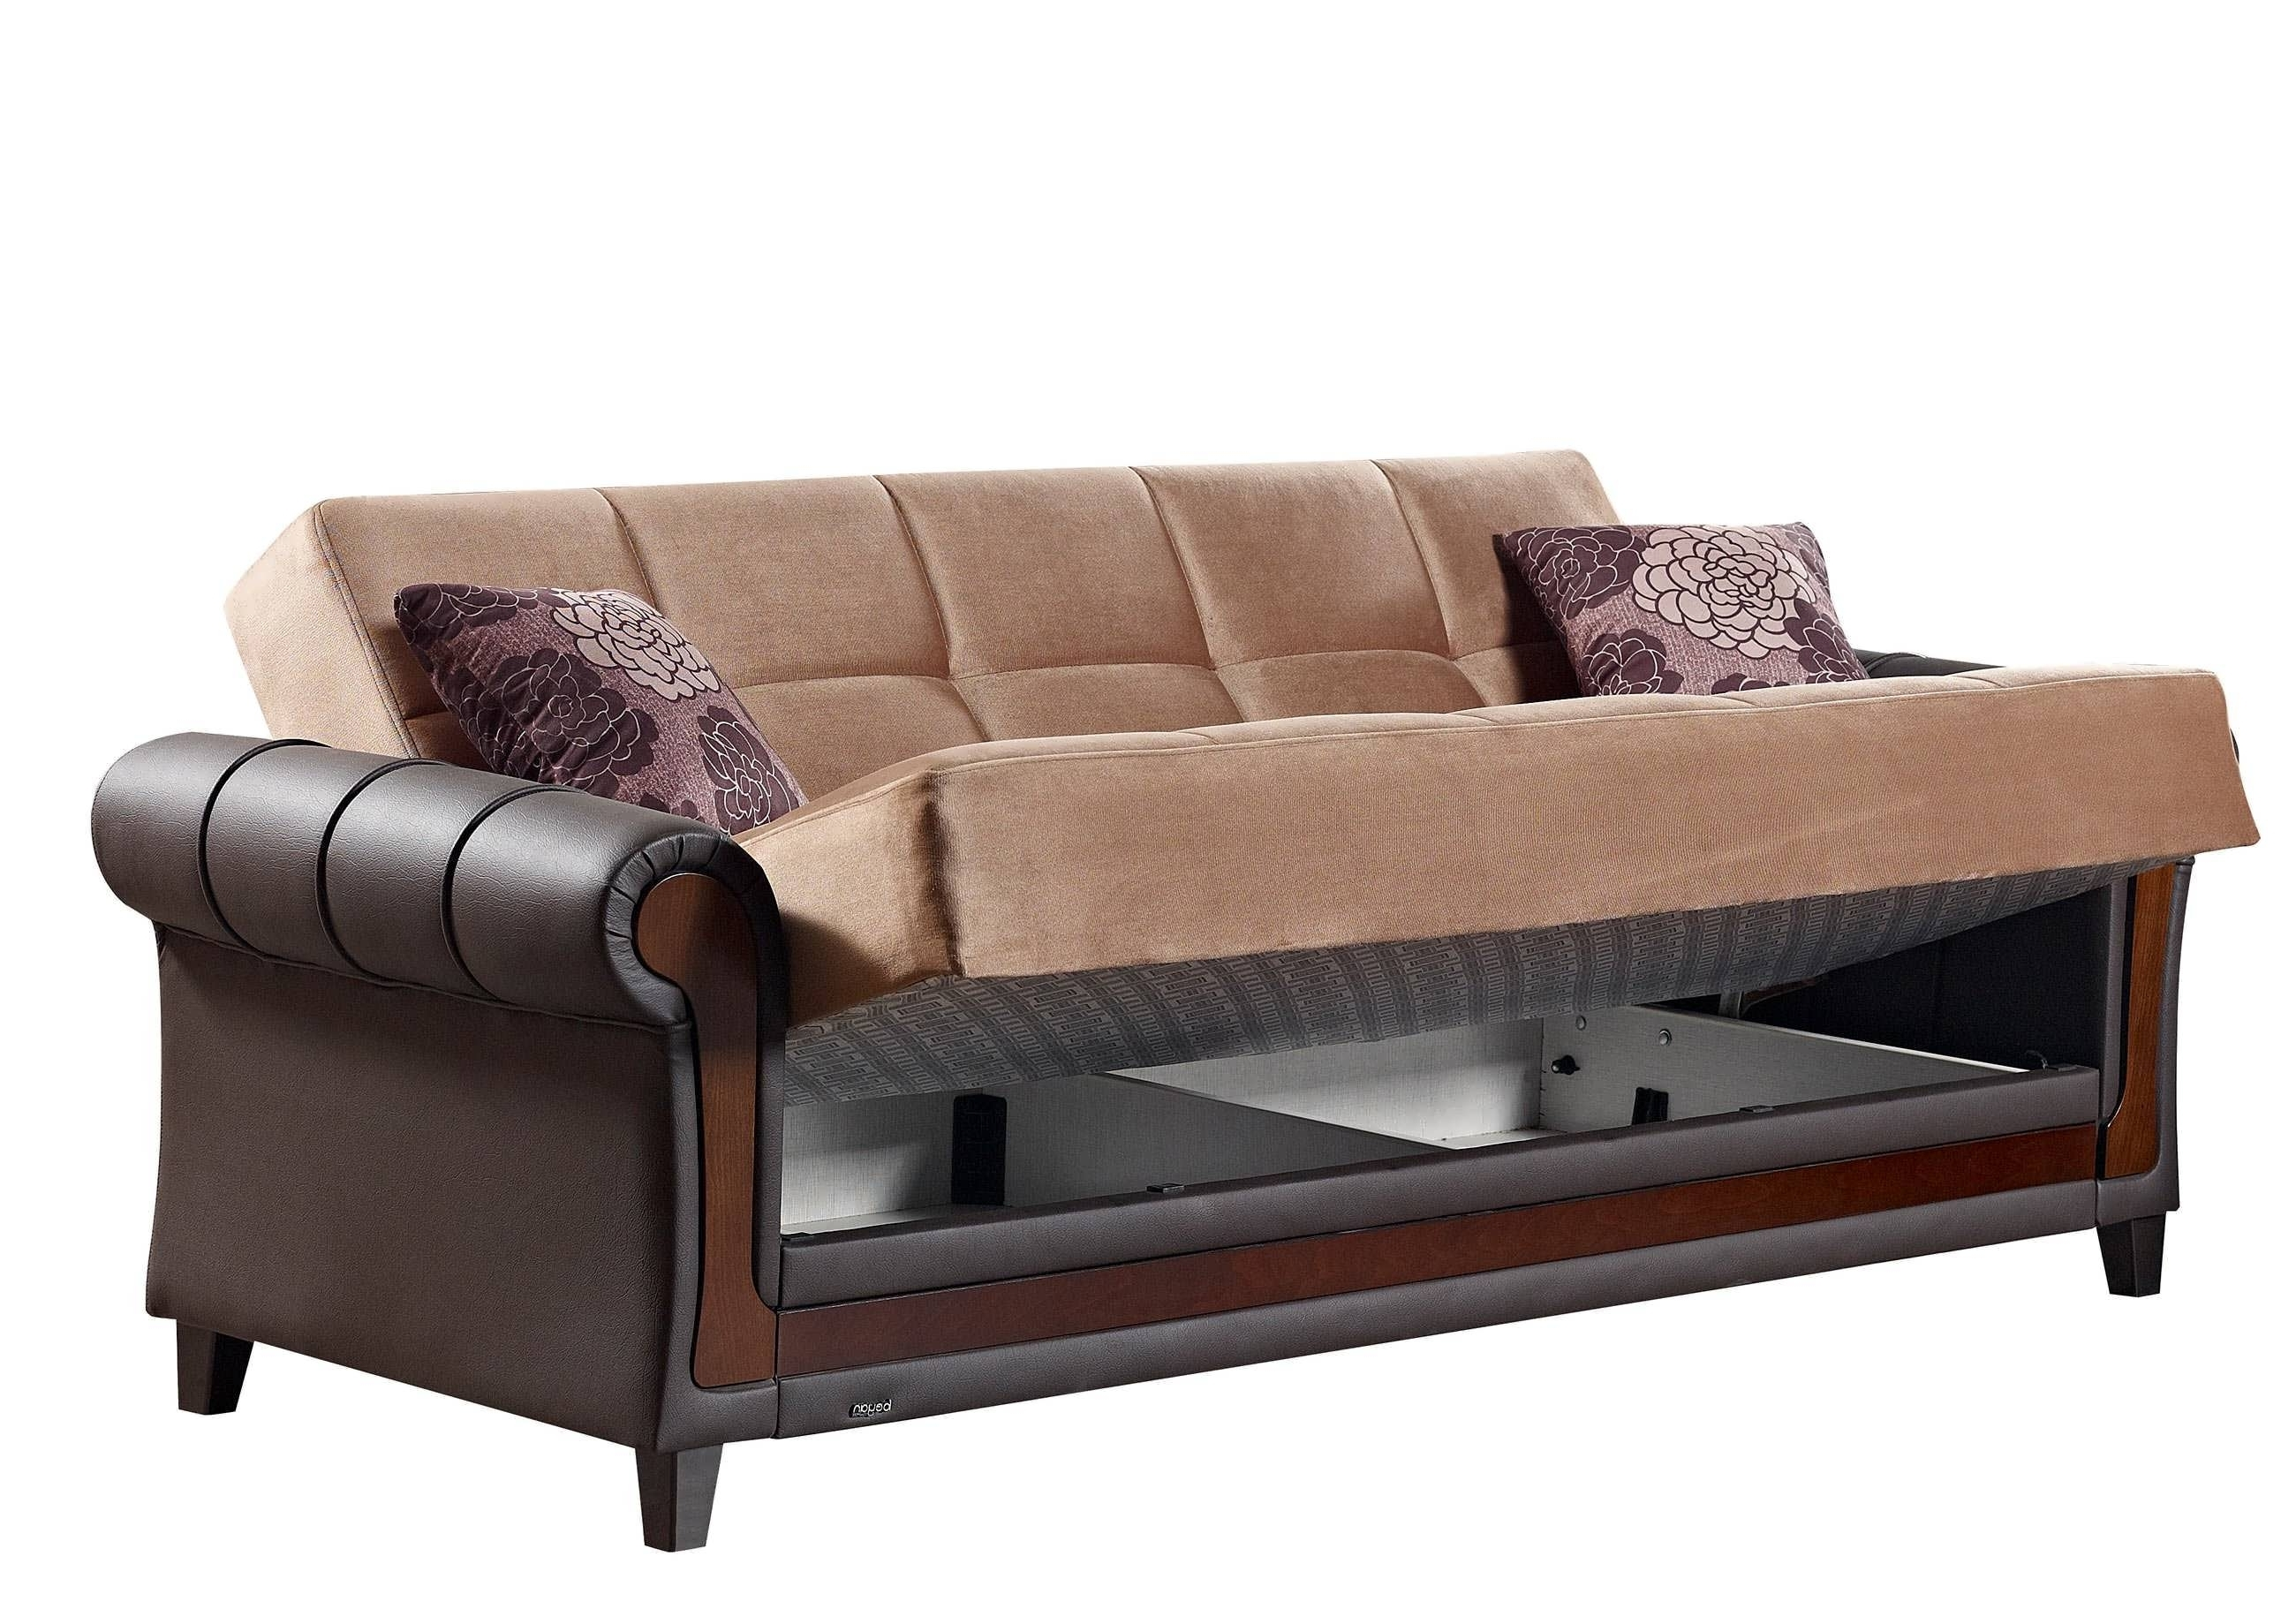 Fashionable Sofa : Leather Couches For Sale Fancy Couch Chaise Lounge Sofas With Chaise Lounge Sofas For Sale (View 7 of 15)